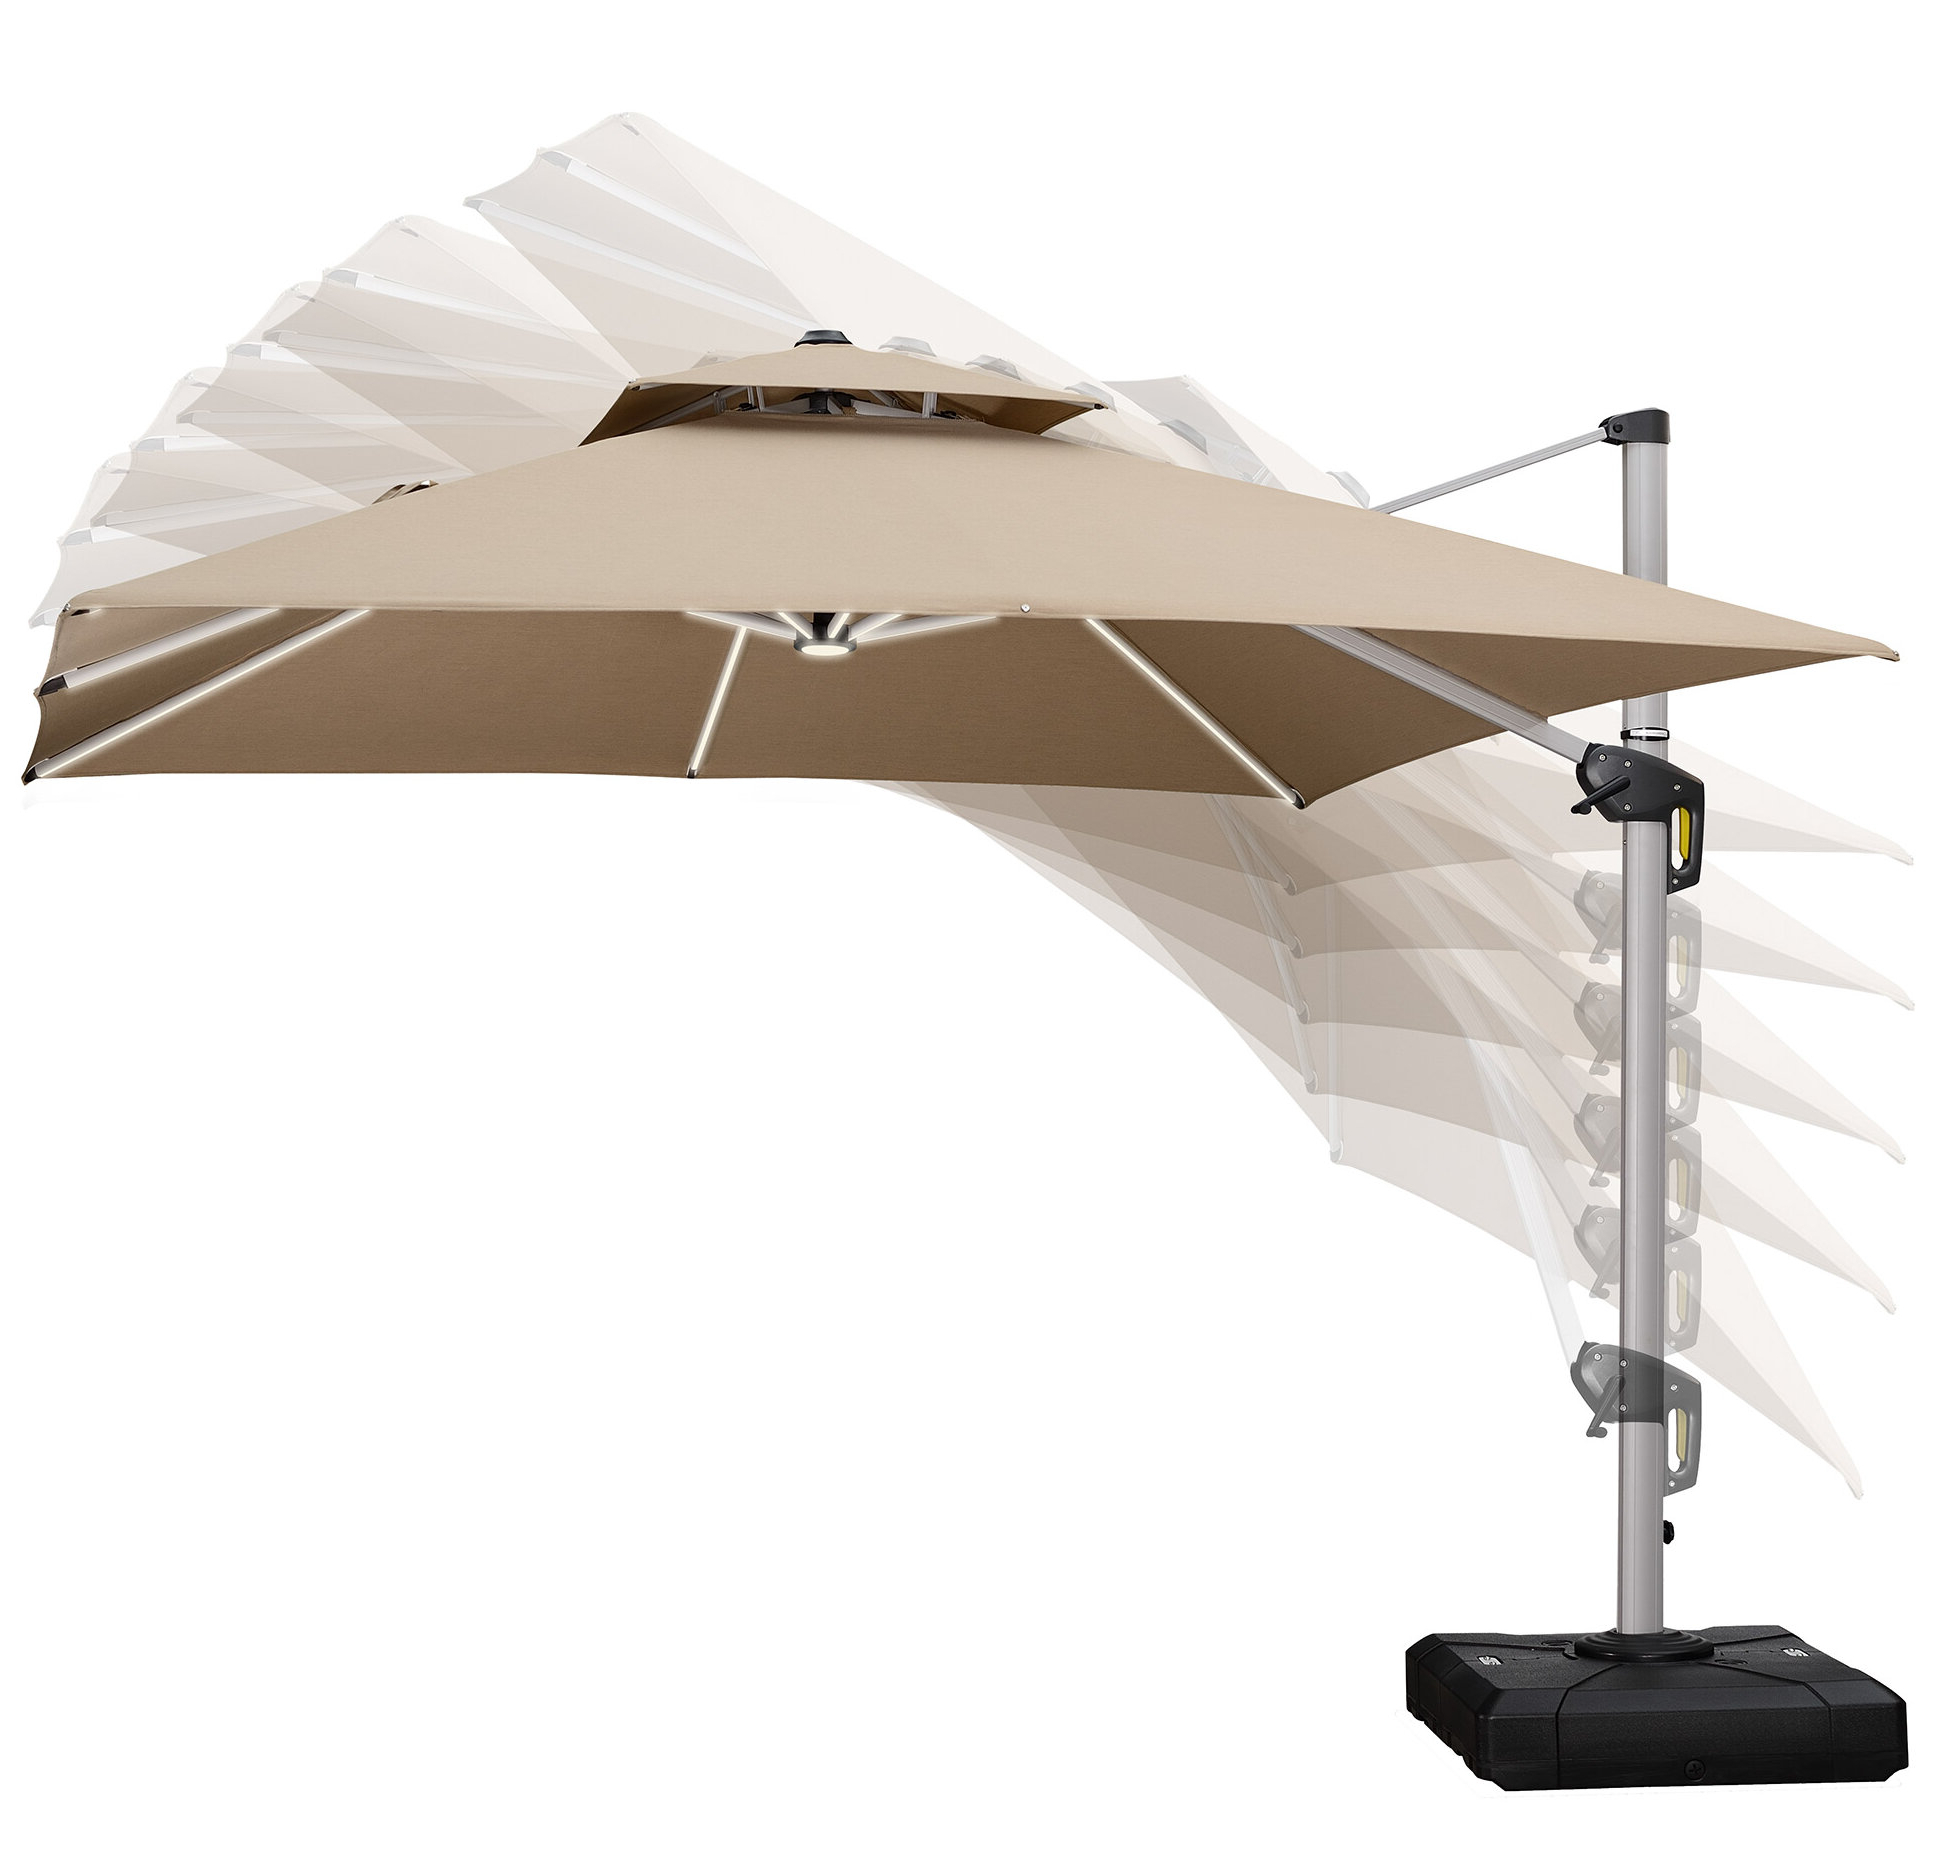 Maidste Square Cantilever Umbrellas Intended For Latest Dermott 10' Square Cantilever Umbrella (Gallery 4 of 20)